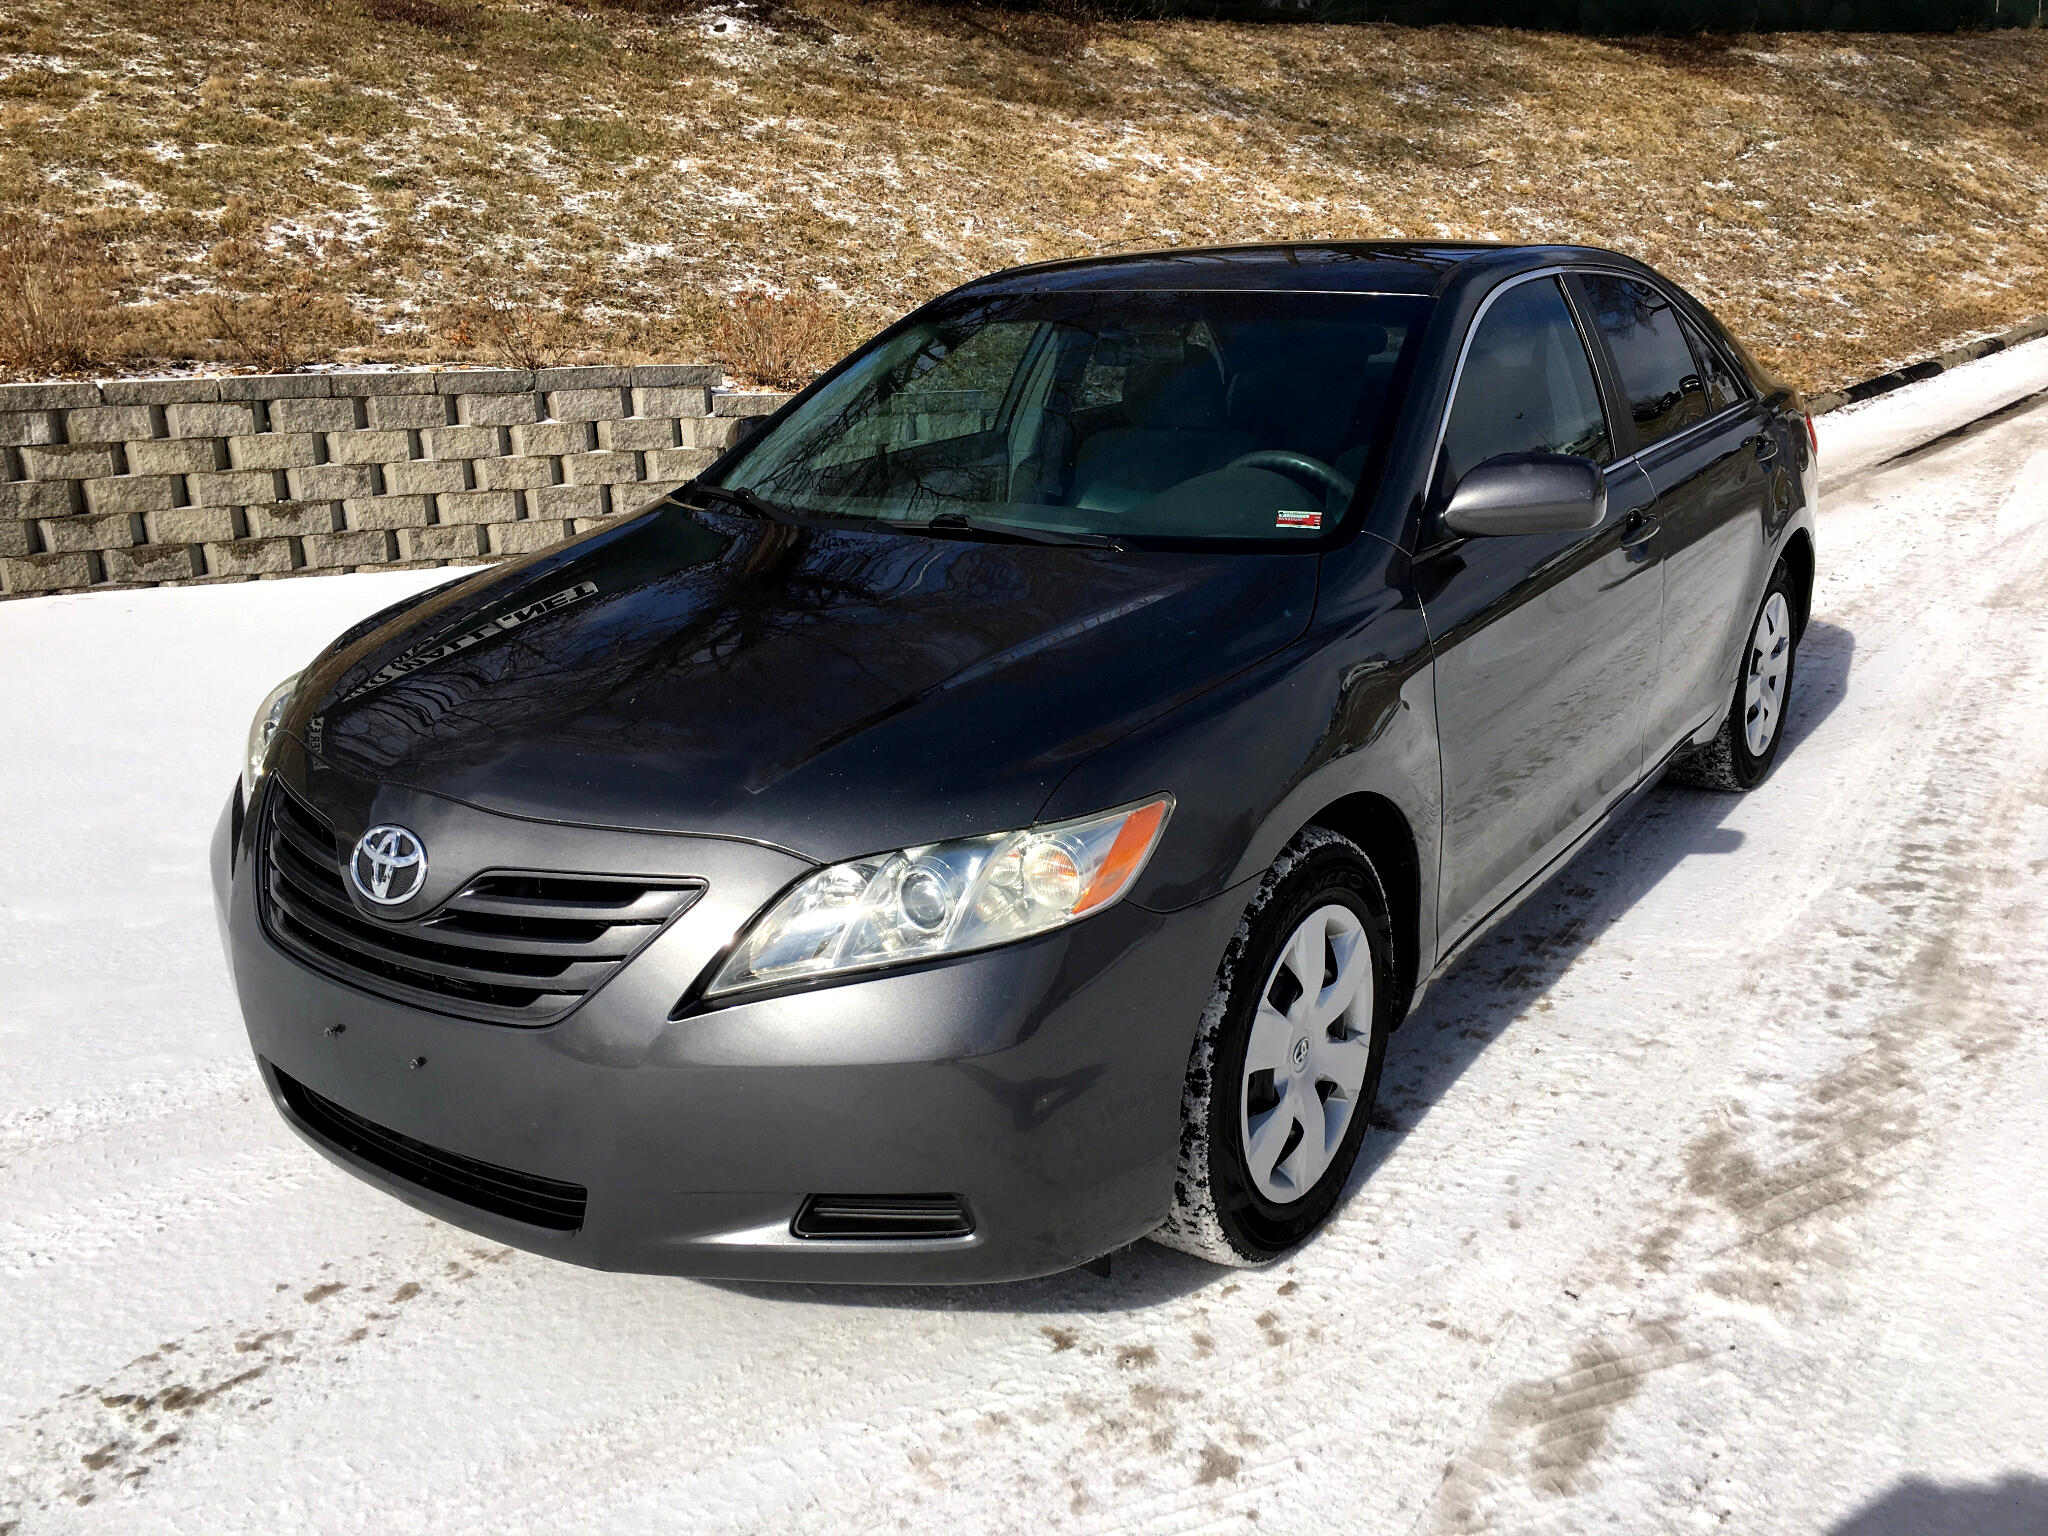 2009 Toyota Camry 4dr Sdn CE Auto